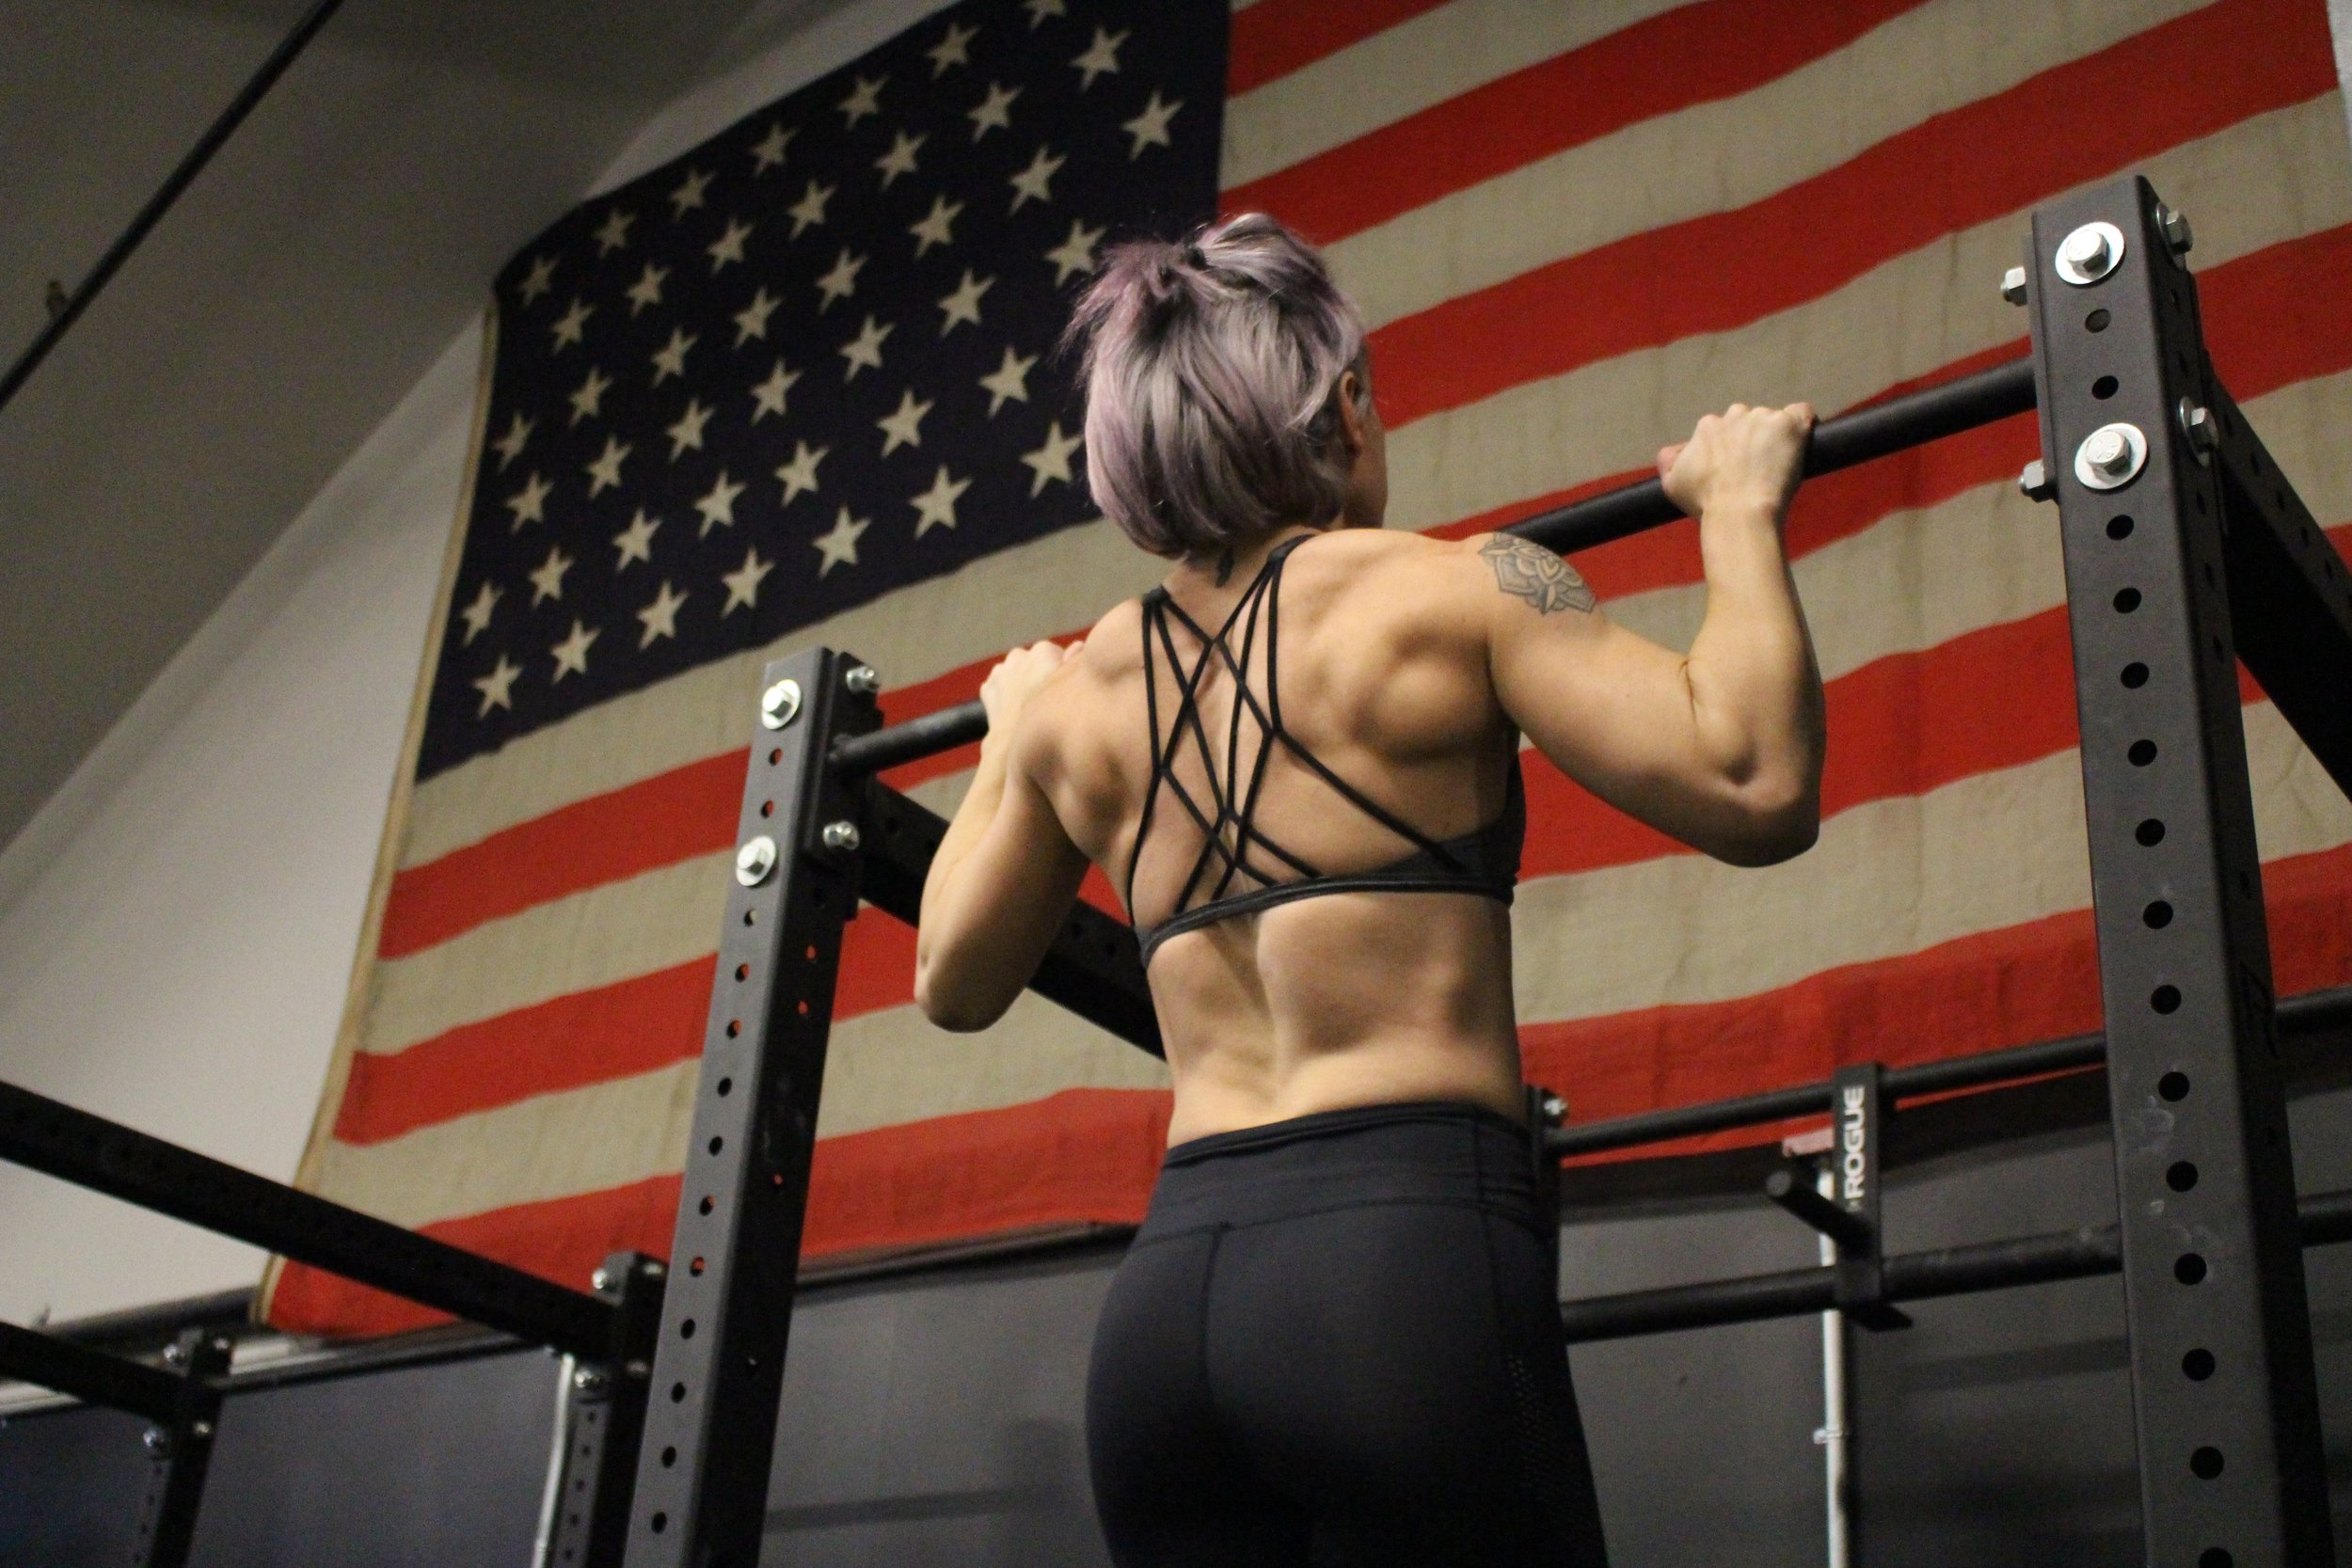 Jaclyn Moran: Owner and Operator of Warhorse Barbell - Visit www.warhorsebarbellclub.com to learn more about her!